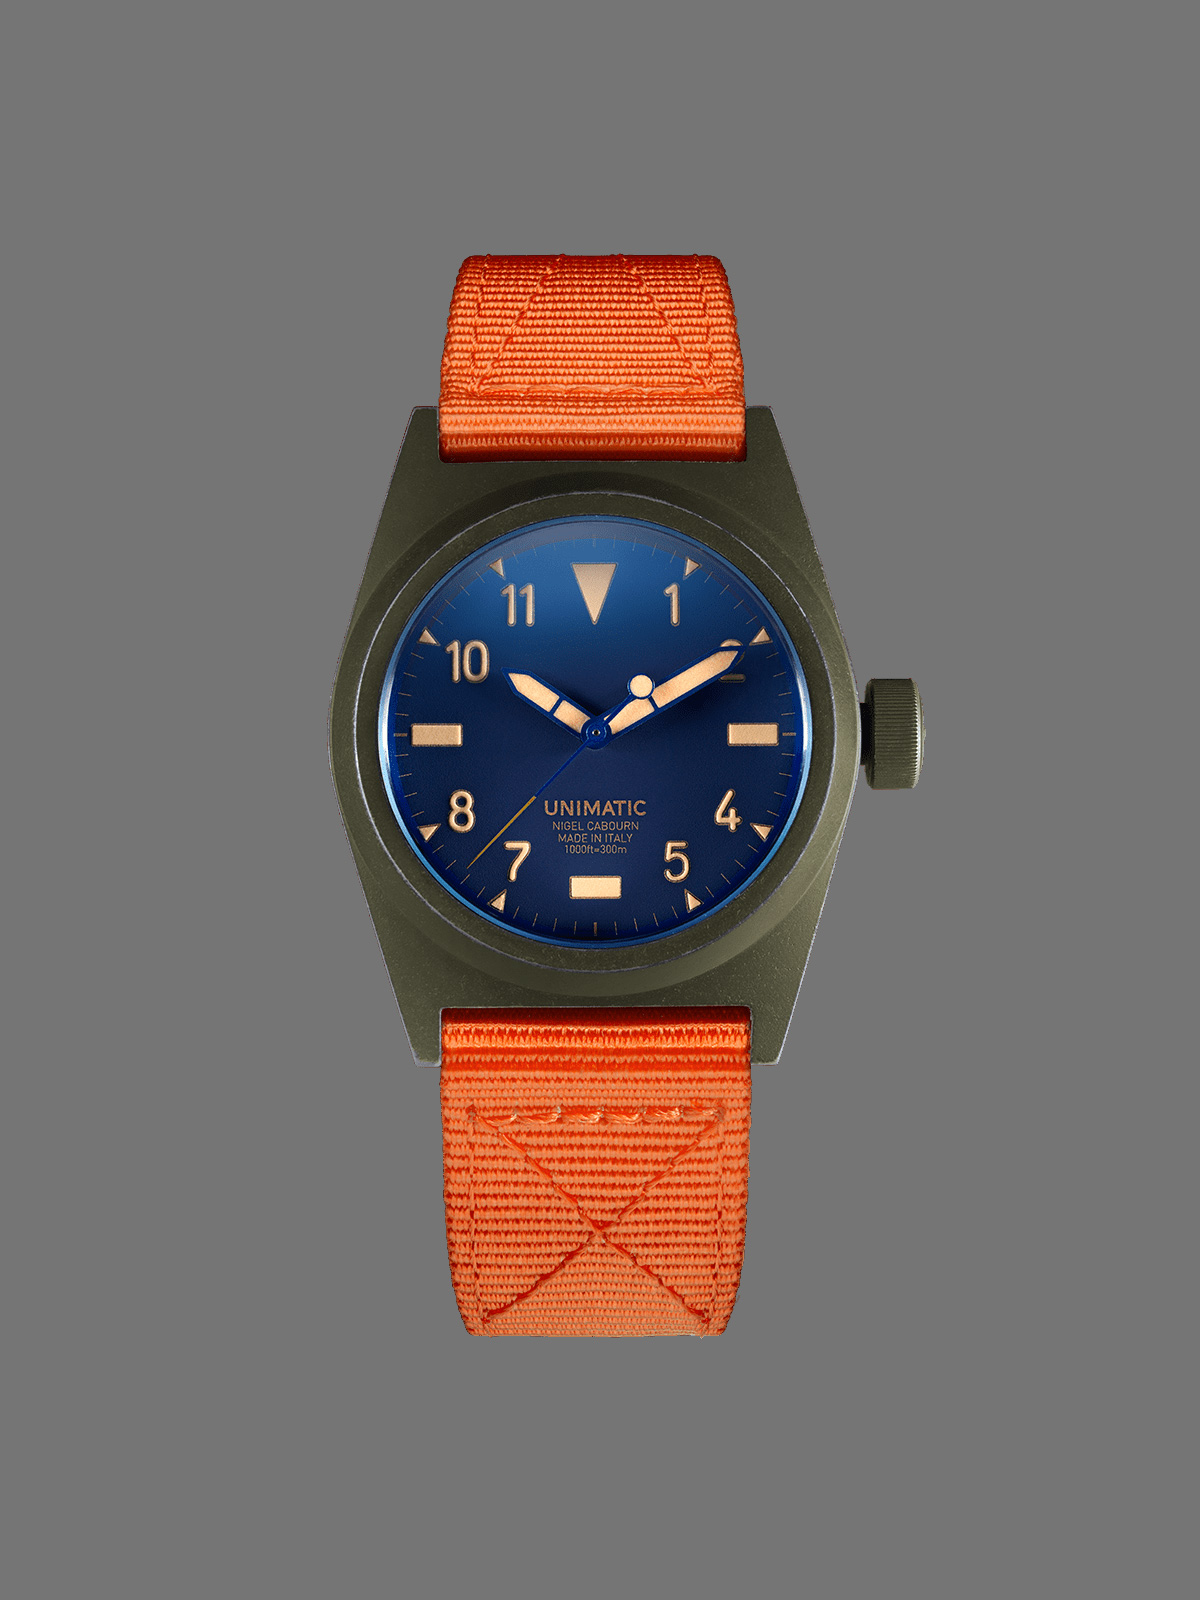 Unimatic x Nigel Cabourn U2-NC wrist watch